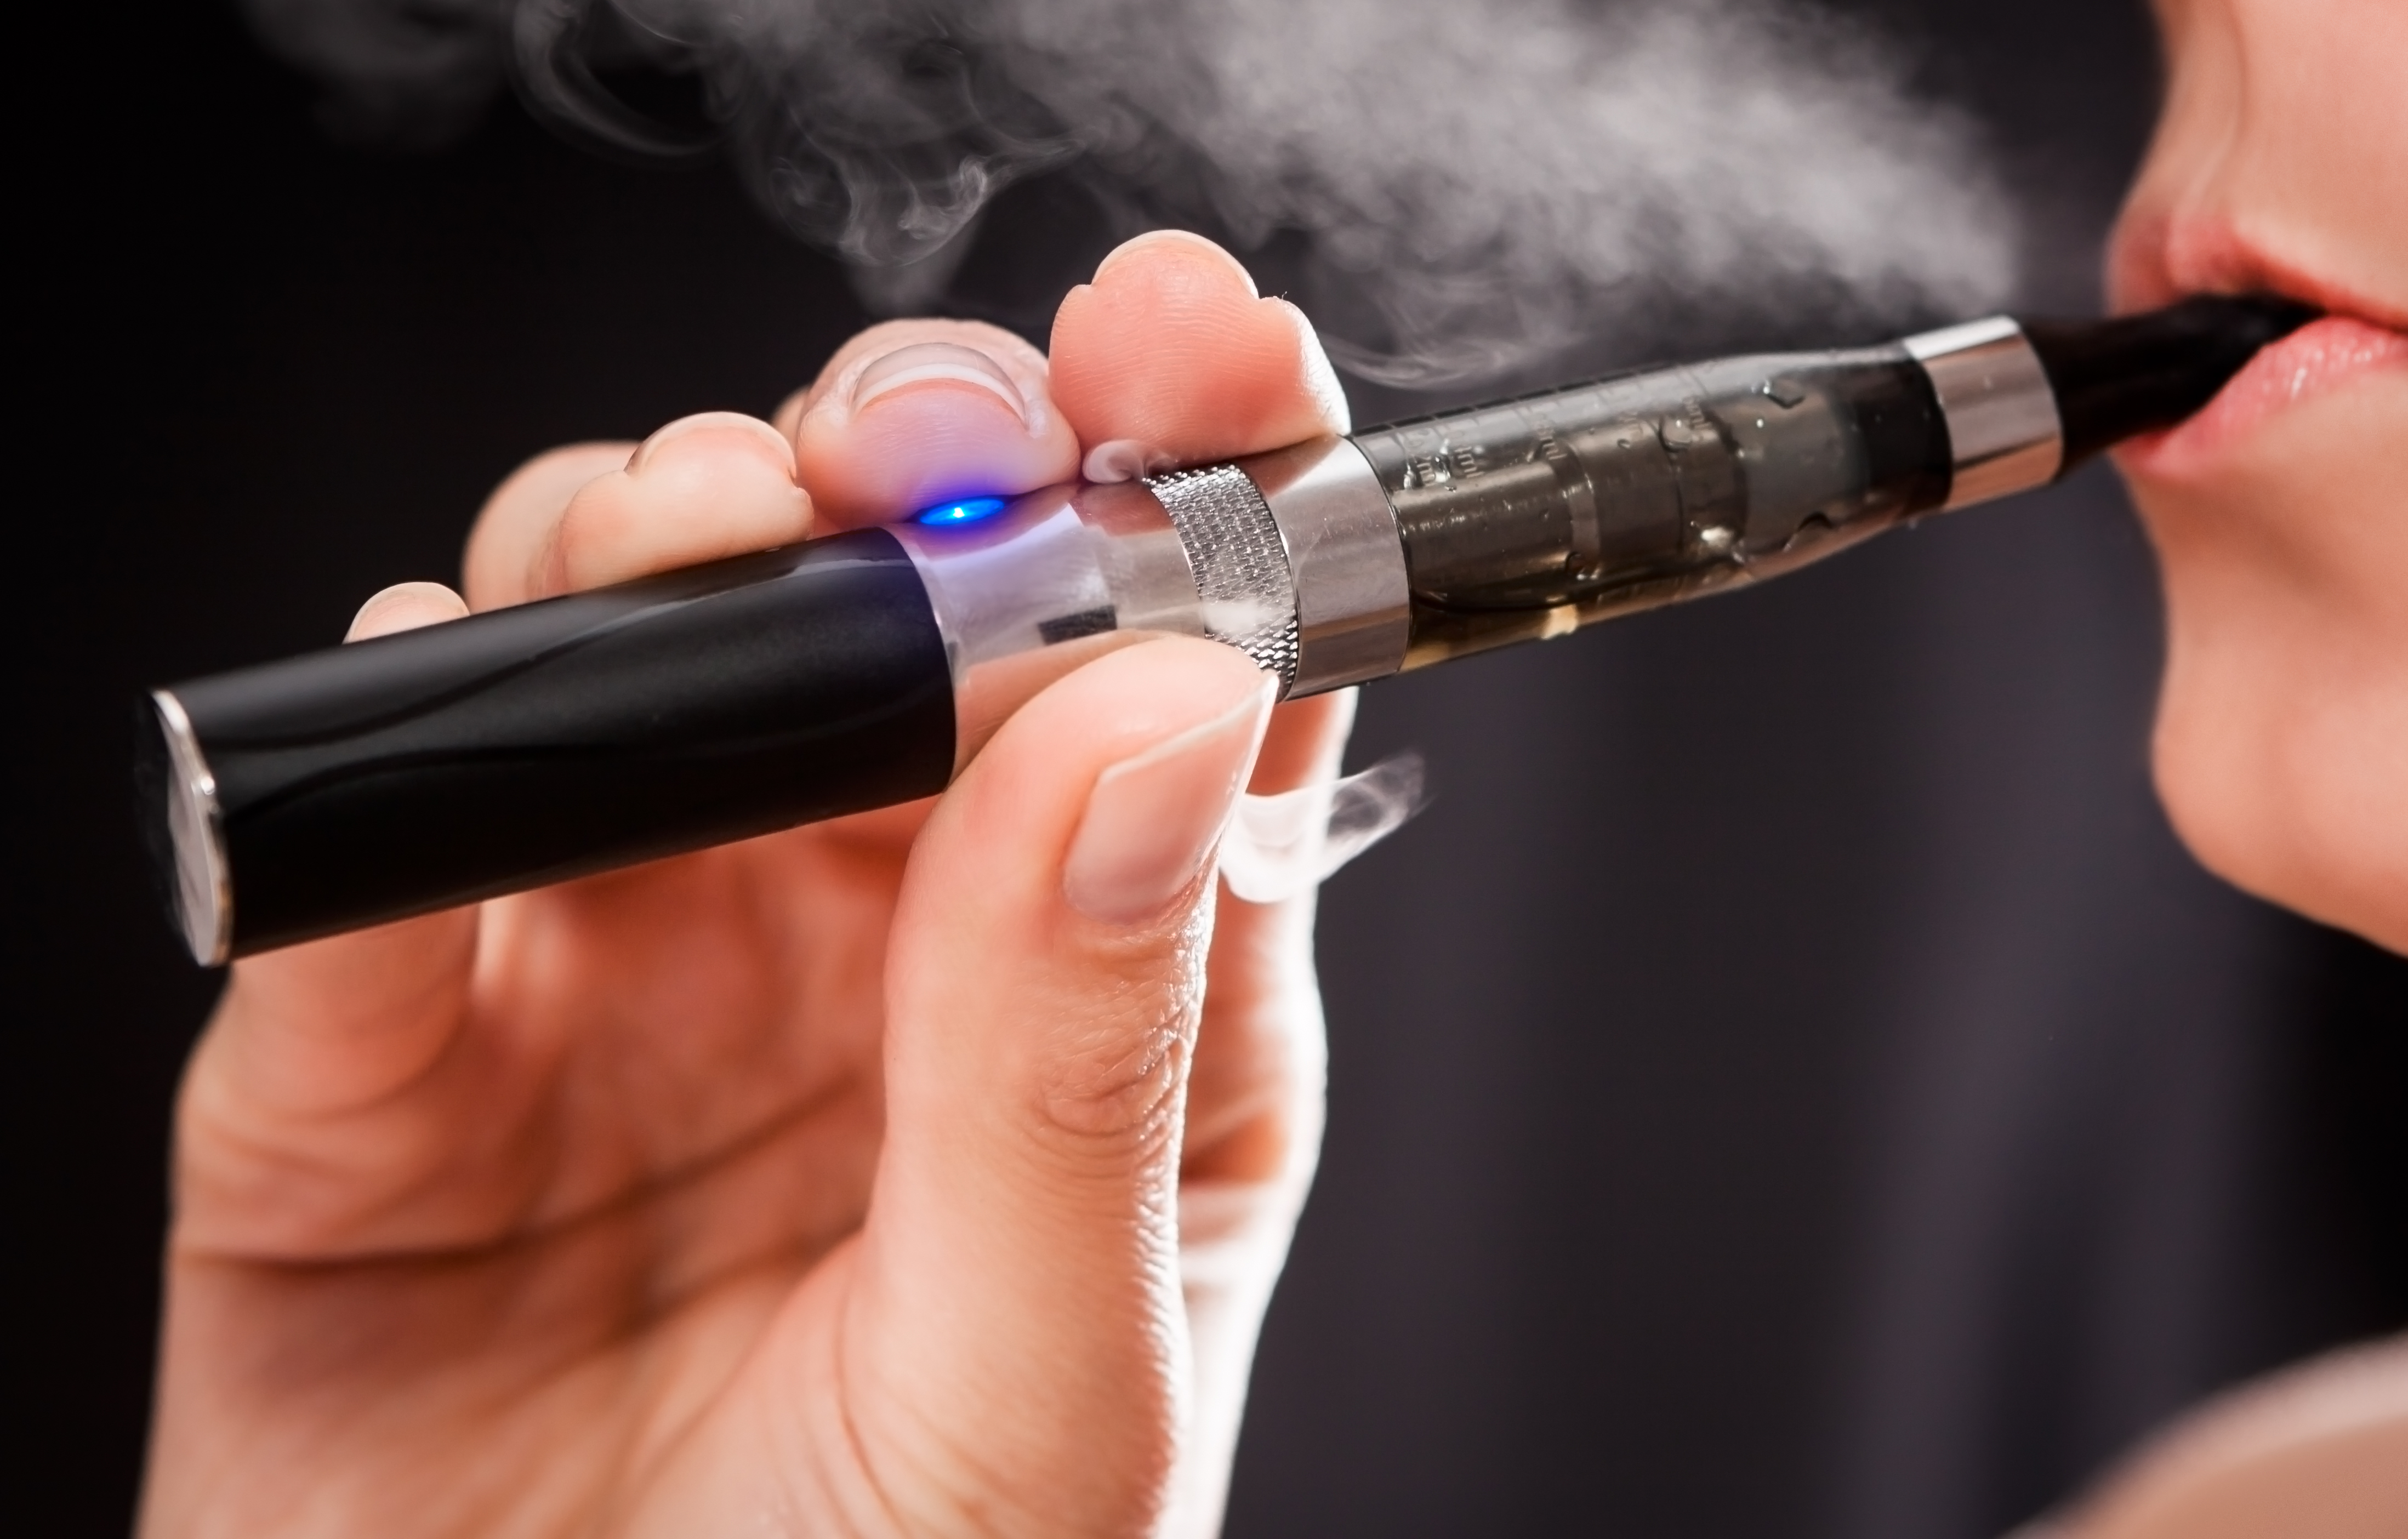 Cancer and Tobacco Experts Not Fired Up about E-Cigarettes for Quitting Smoking